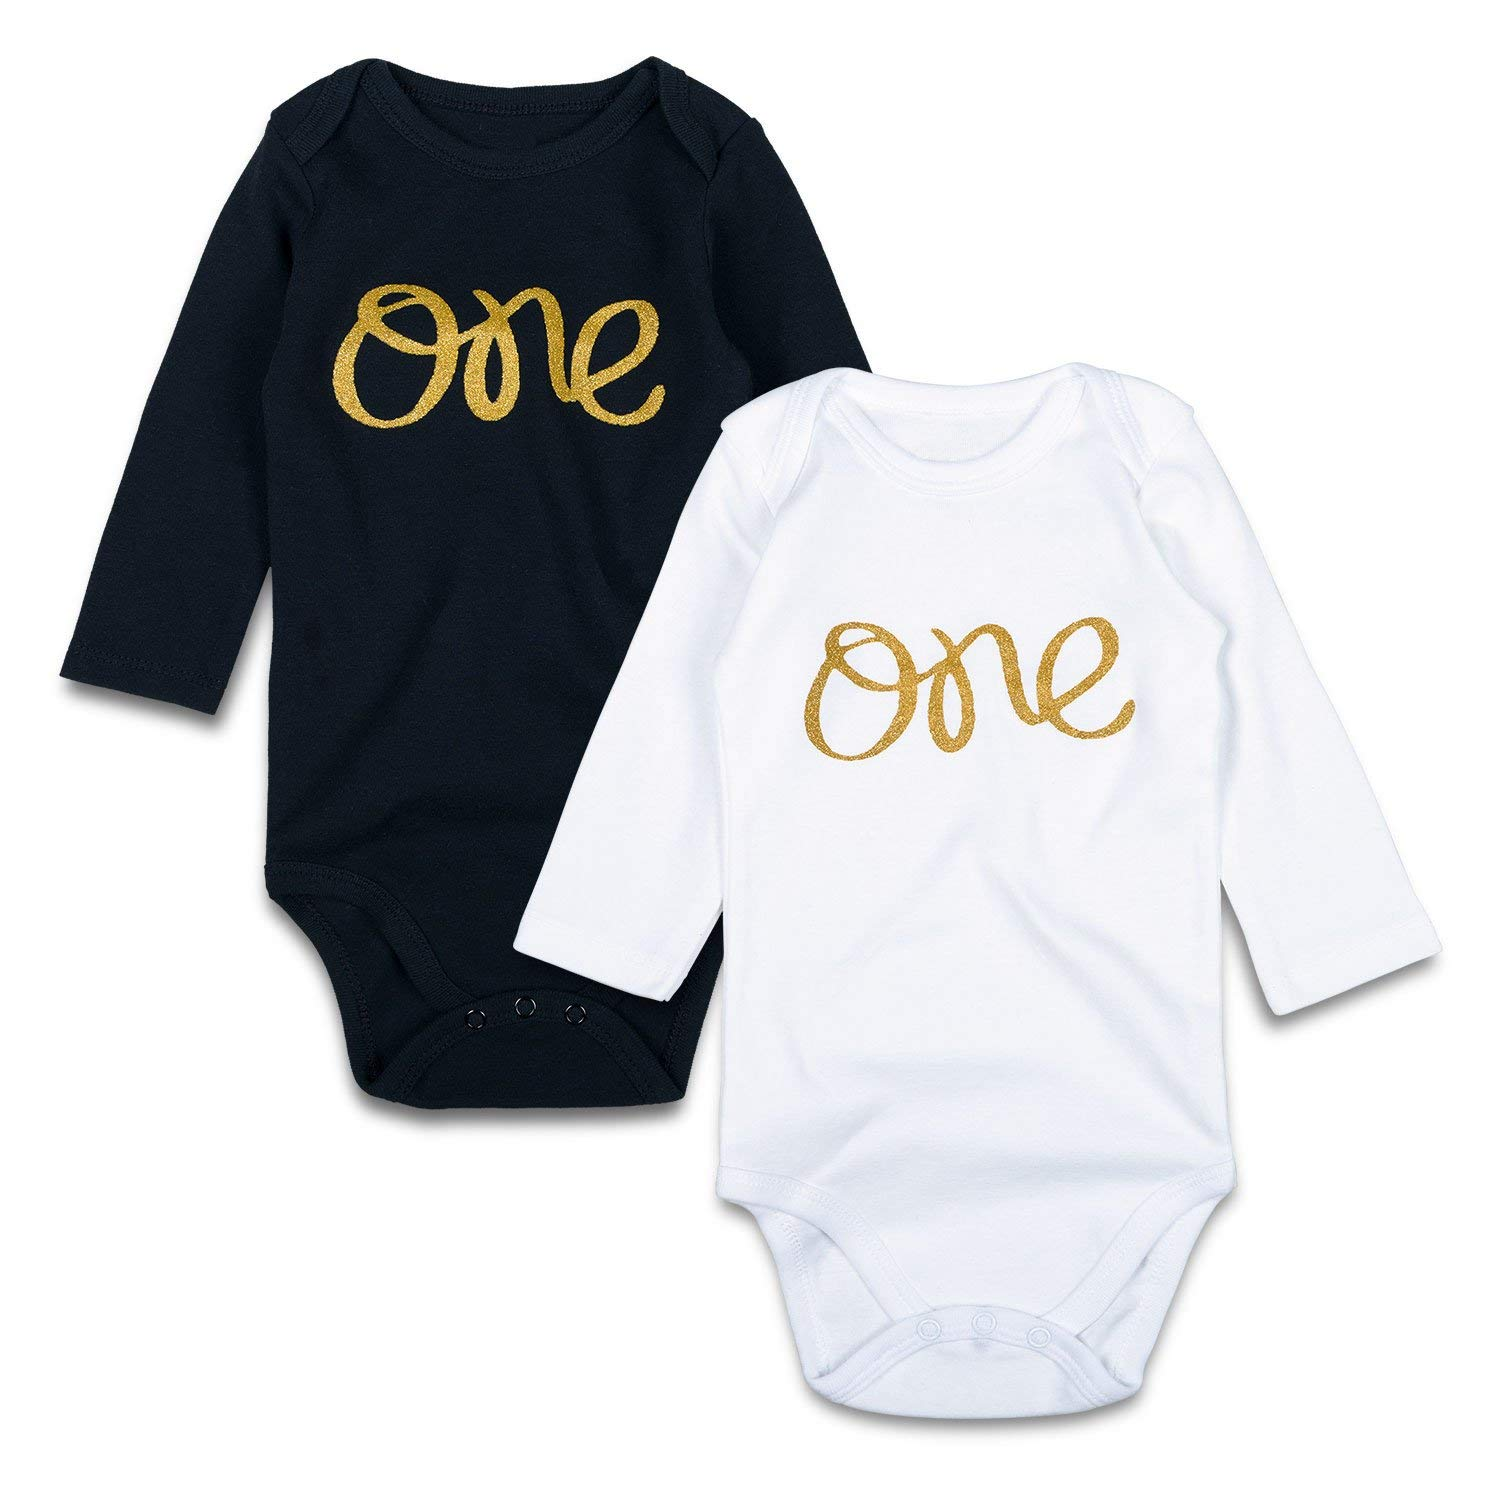 a2d38abf9e Get Quotations · SOBOWO Gold One 2-Pack Long Sleeve Bodysuits for Newborn  Girls Boys